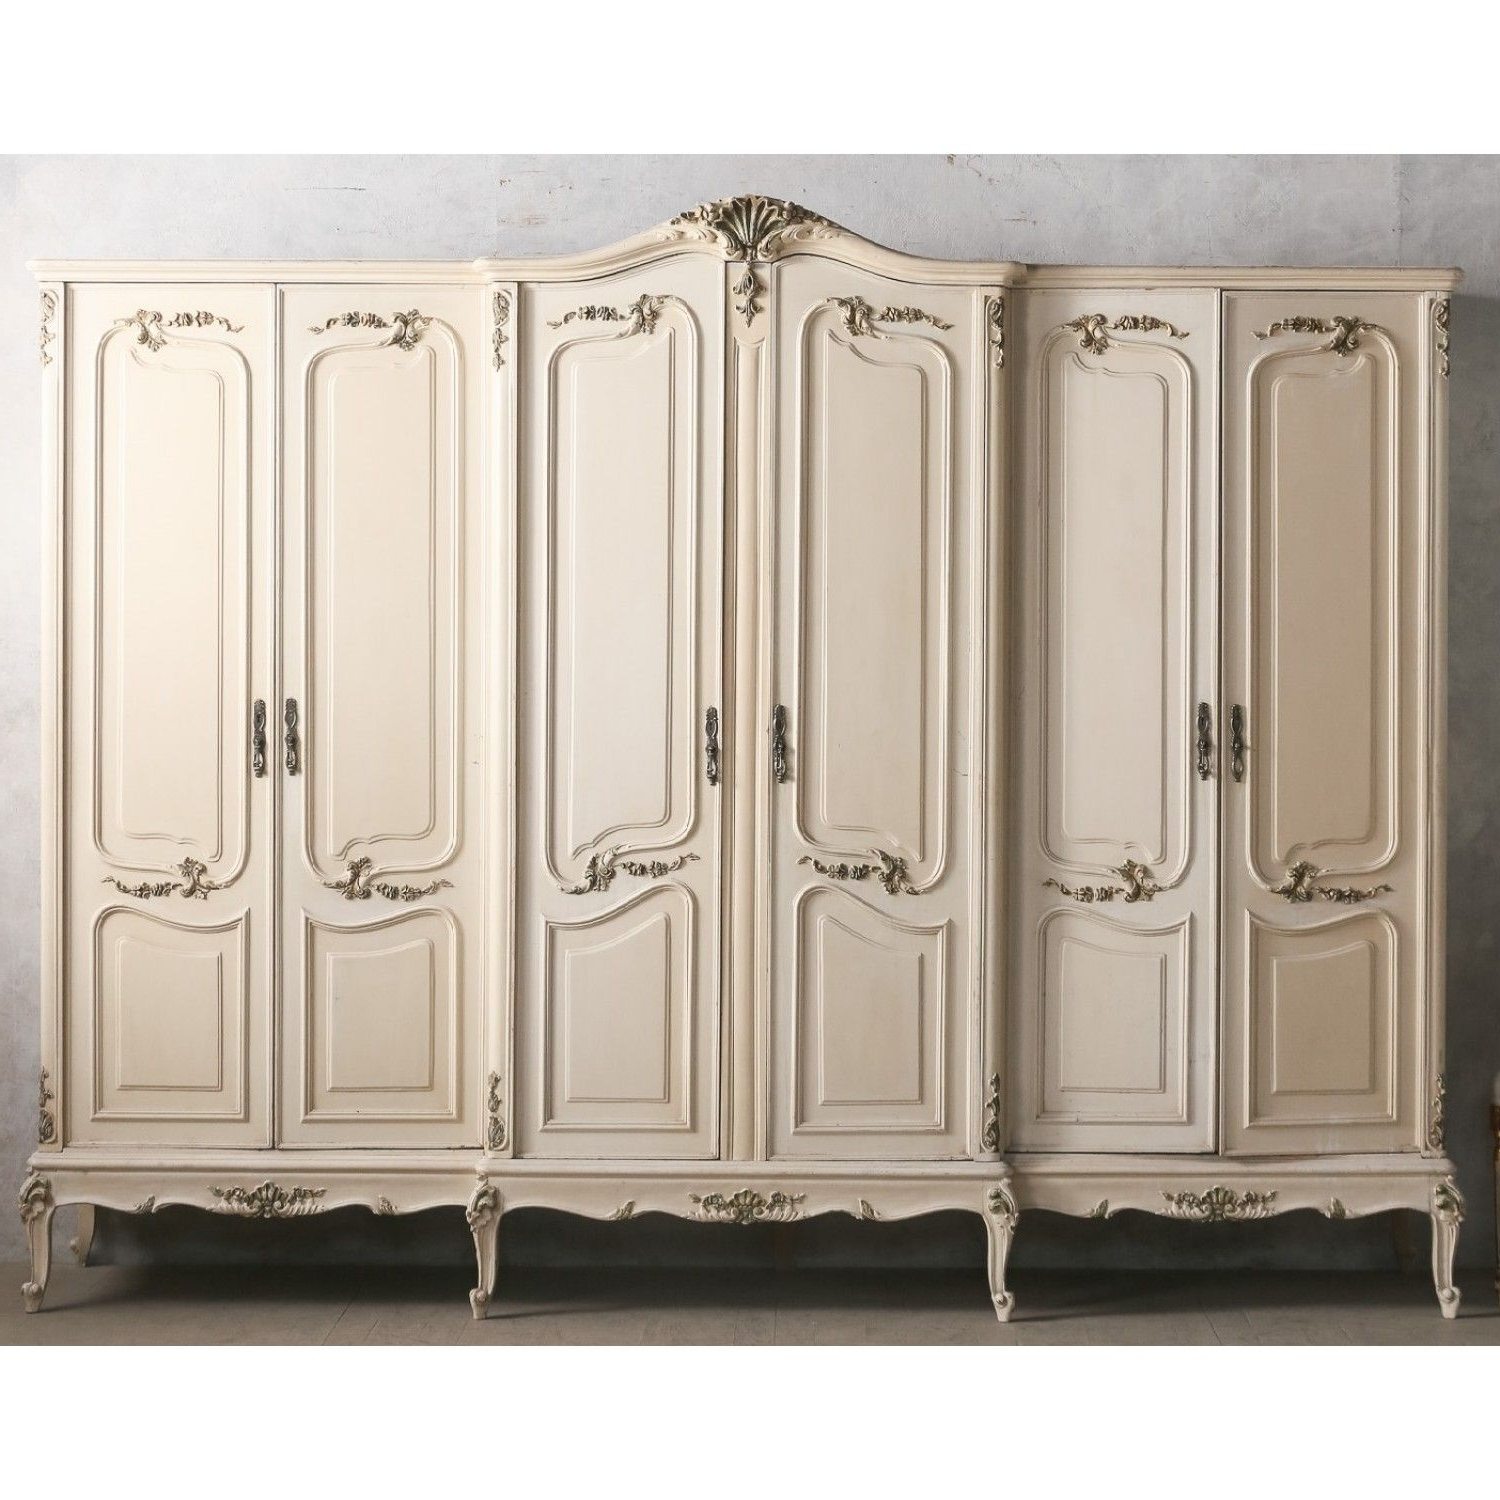 Rococo Wardrobes With Well Known Vintage European Large Rococo Style Wardrobe Armore In White (View 12 of 15)